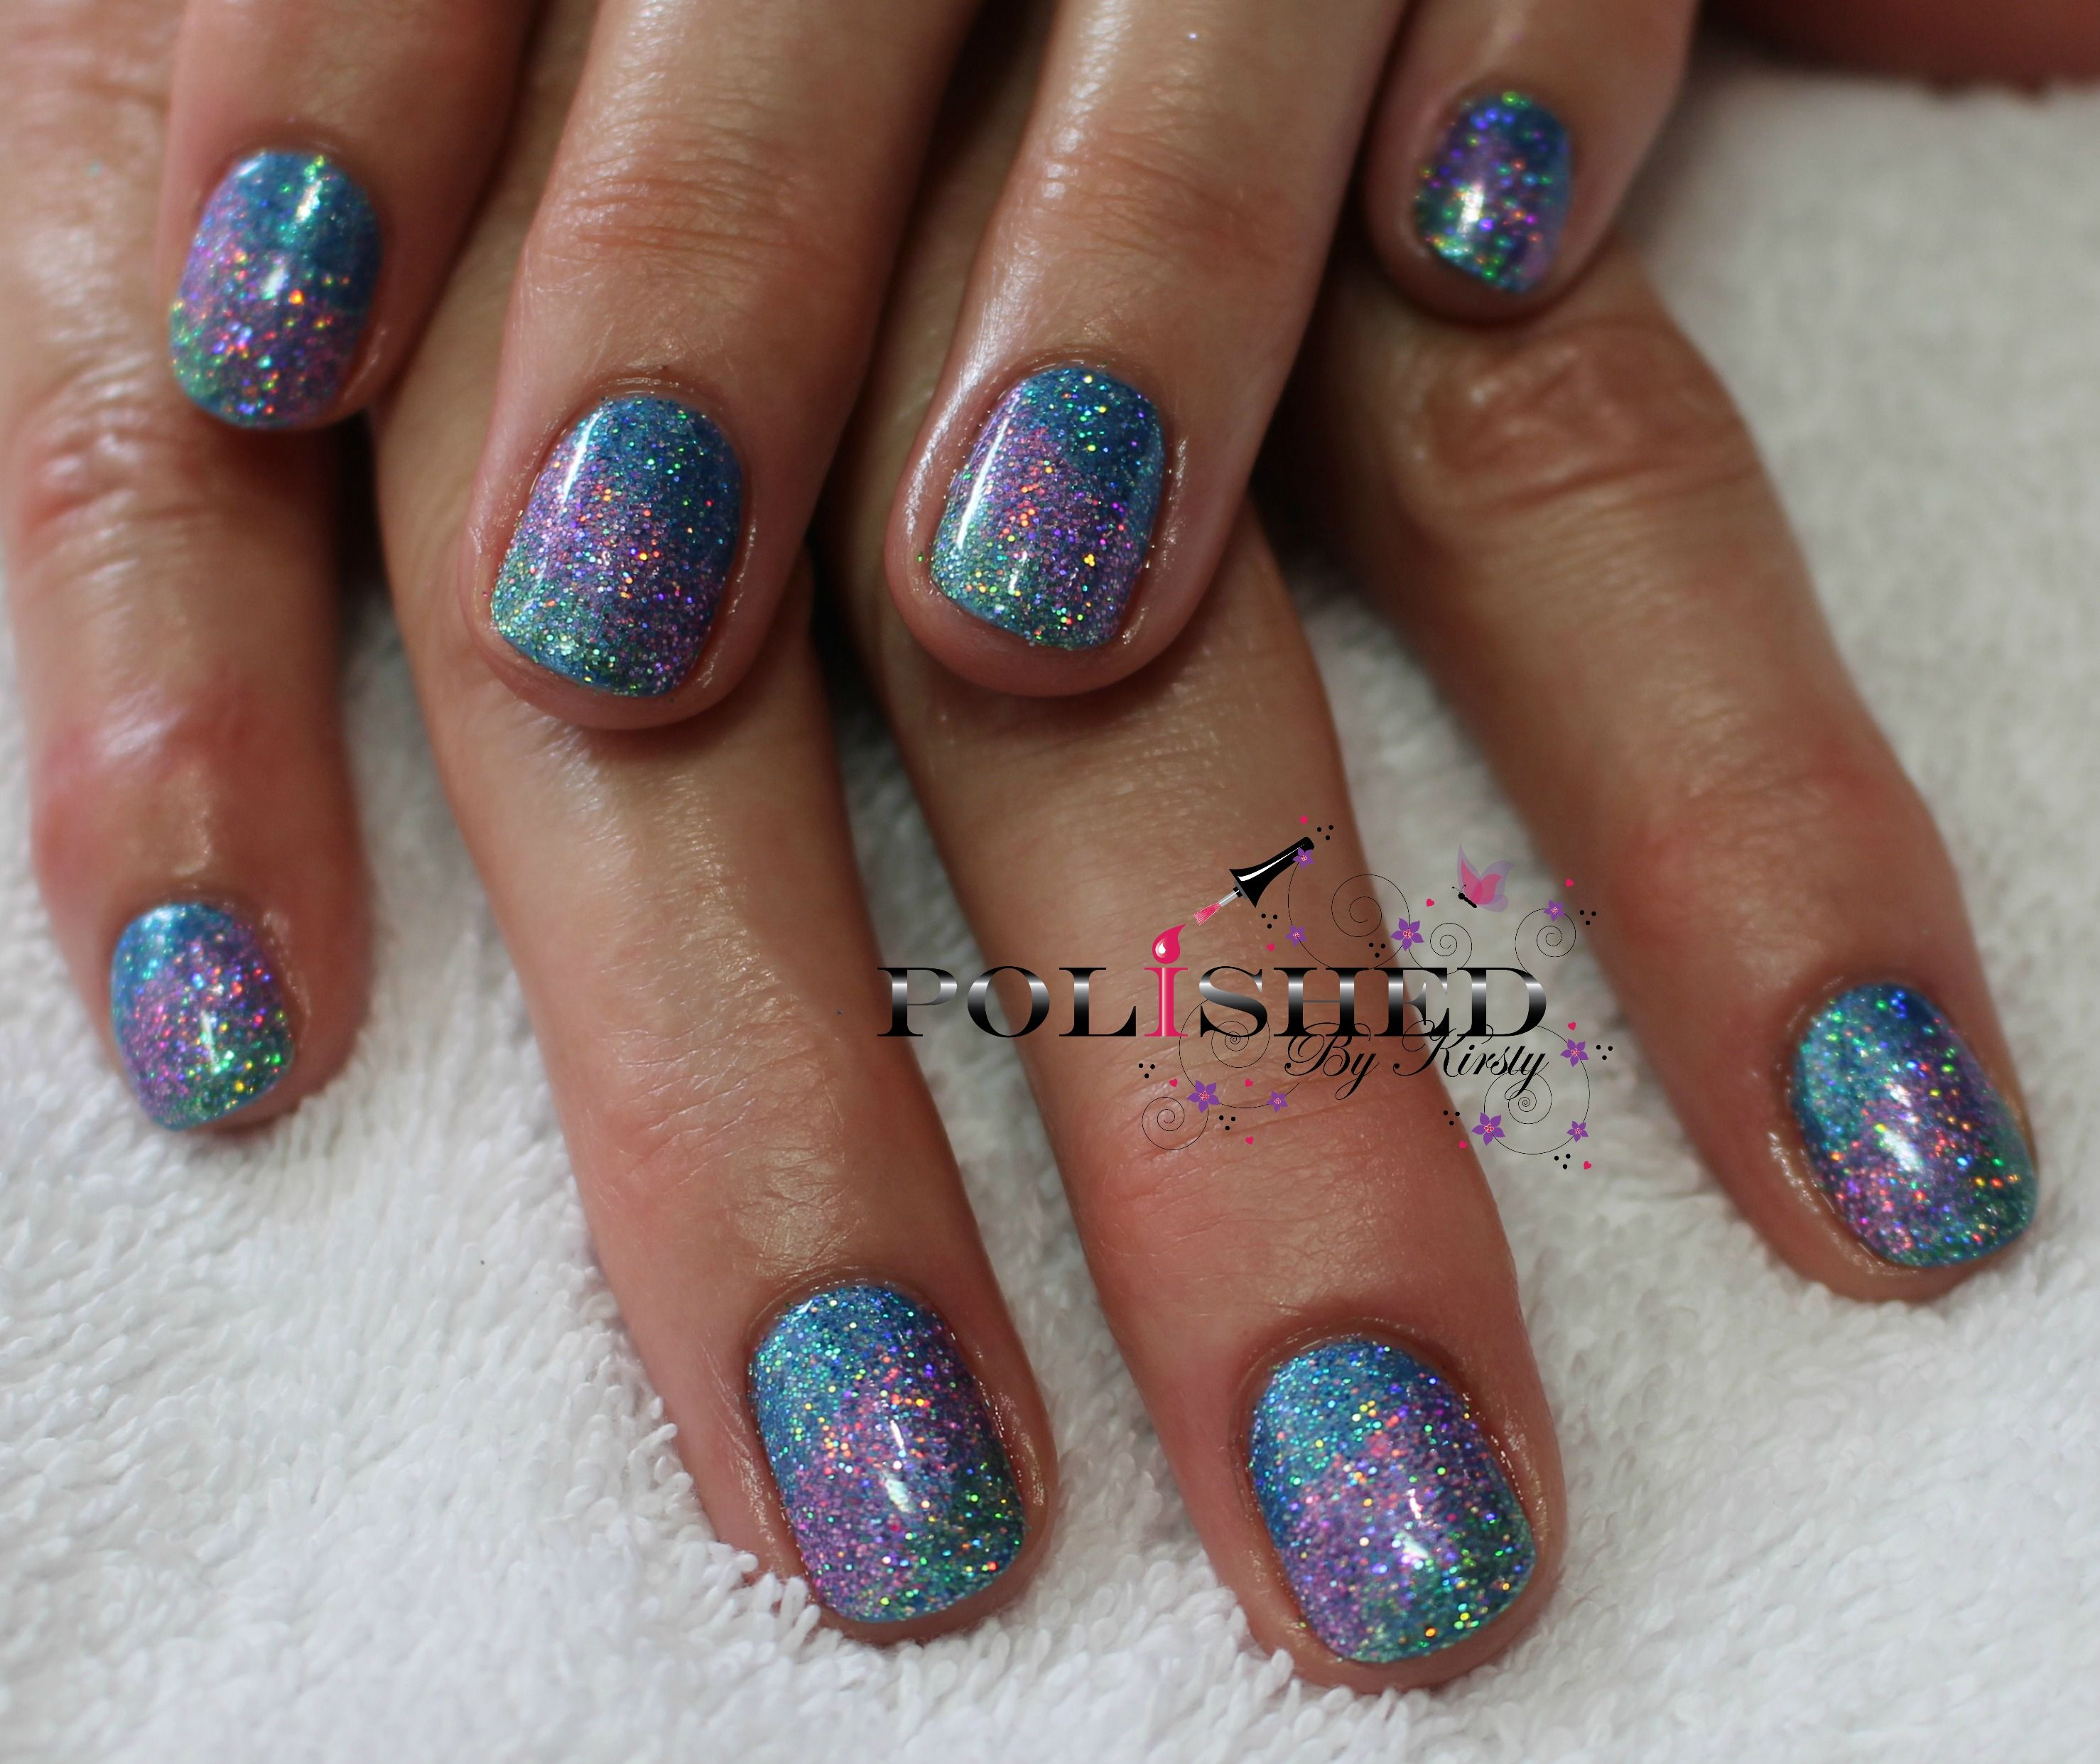 Green Glitter Nail Polish Uk: CND SHELLAC WATERPARK WITH BLUE, LAVENDER AND GREEN